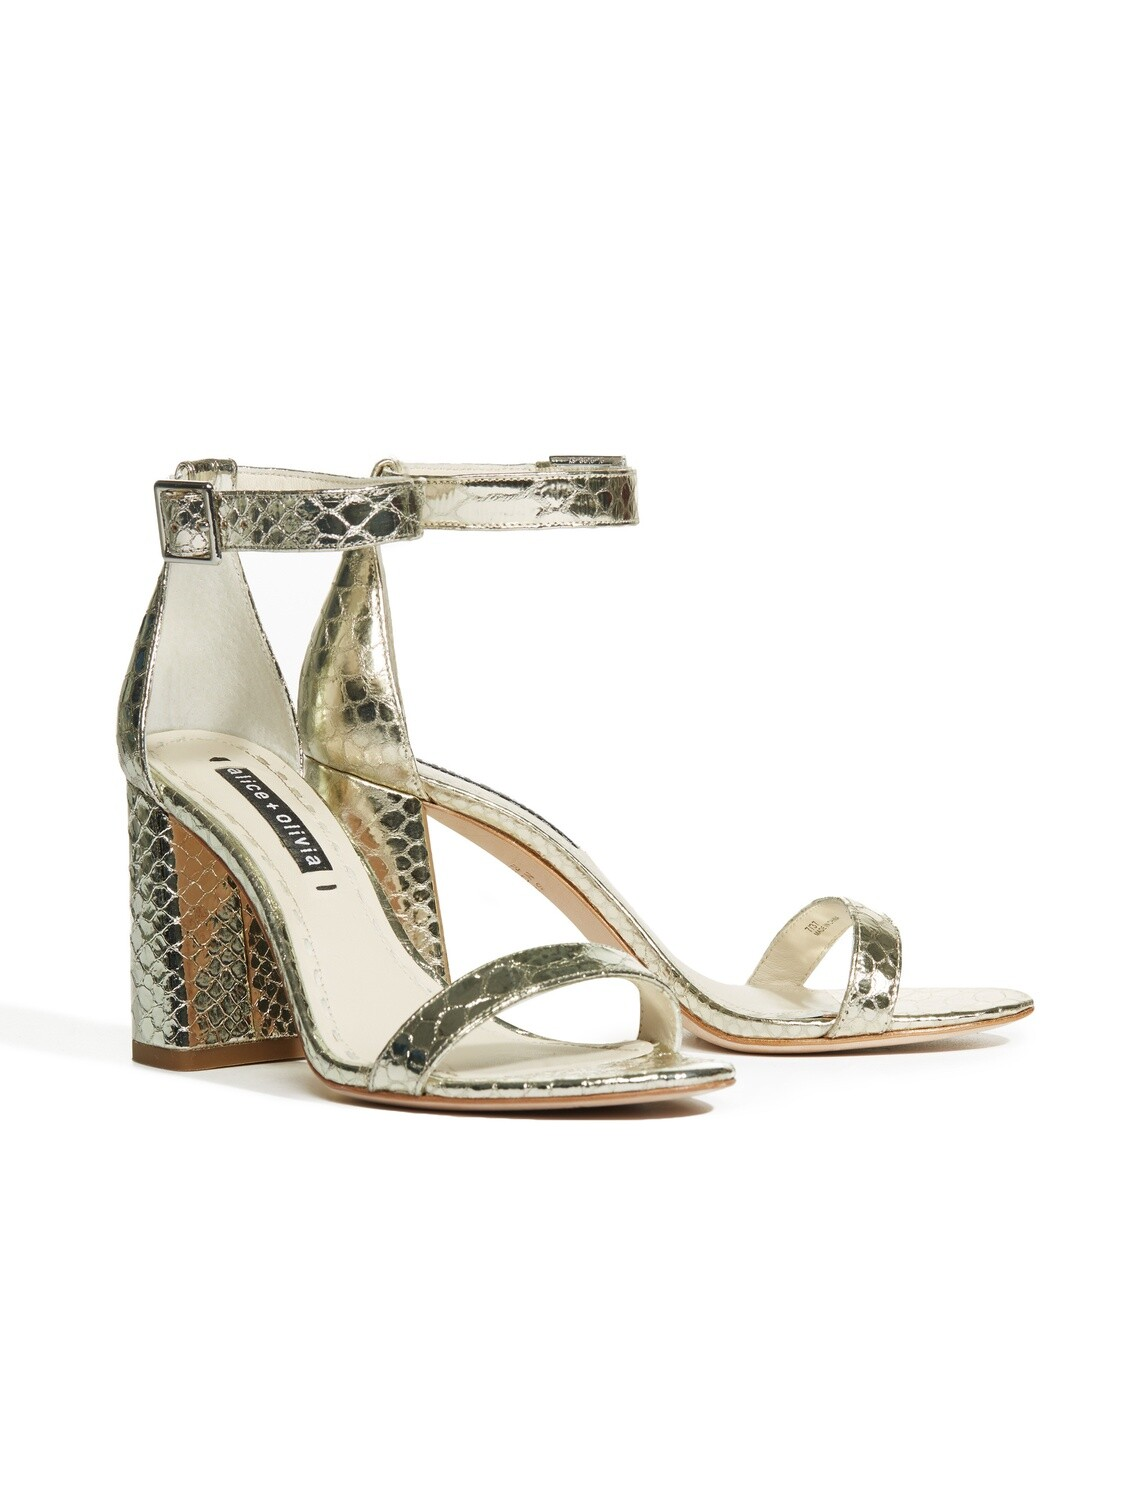 Alice & Olivia Lillian Heel In Light Gold Snake Skin